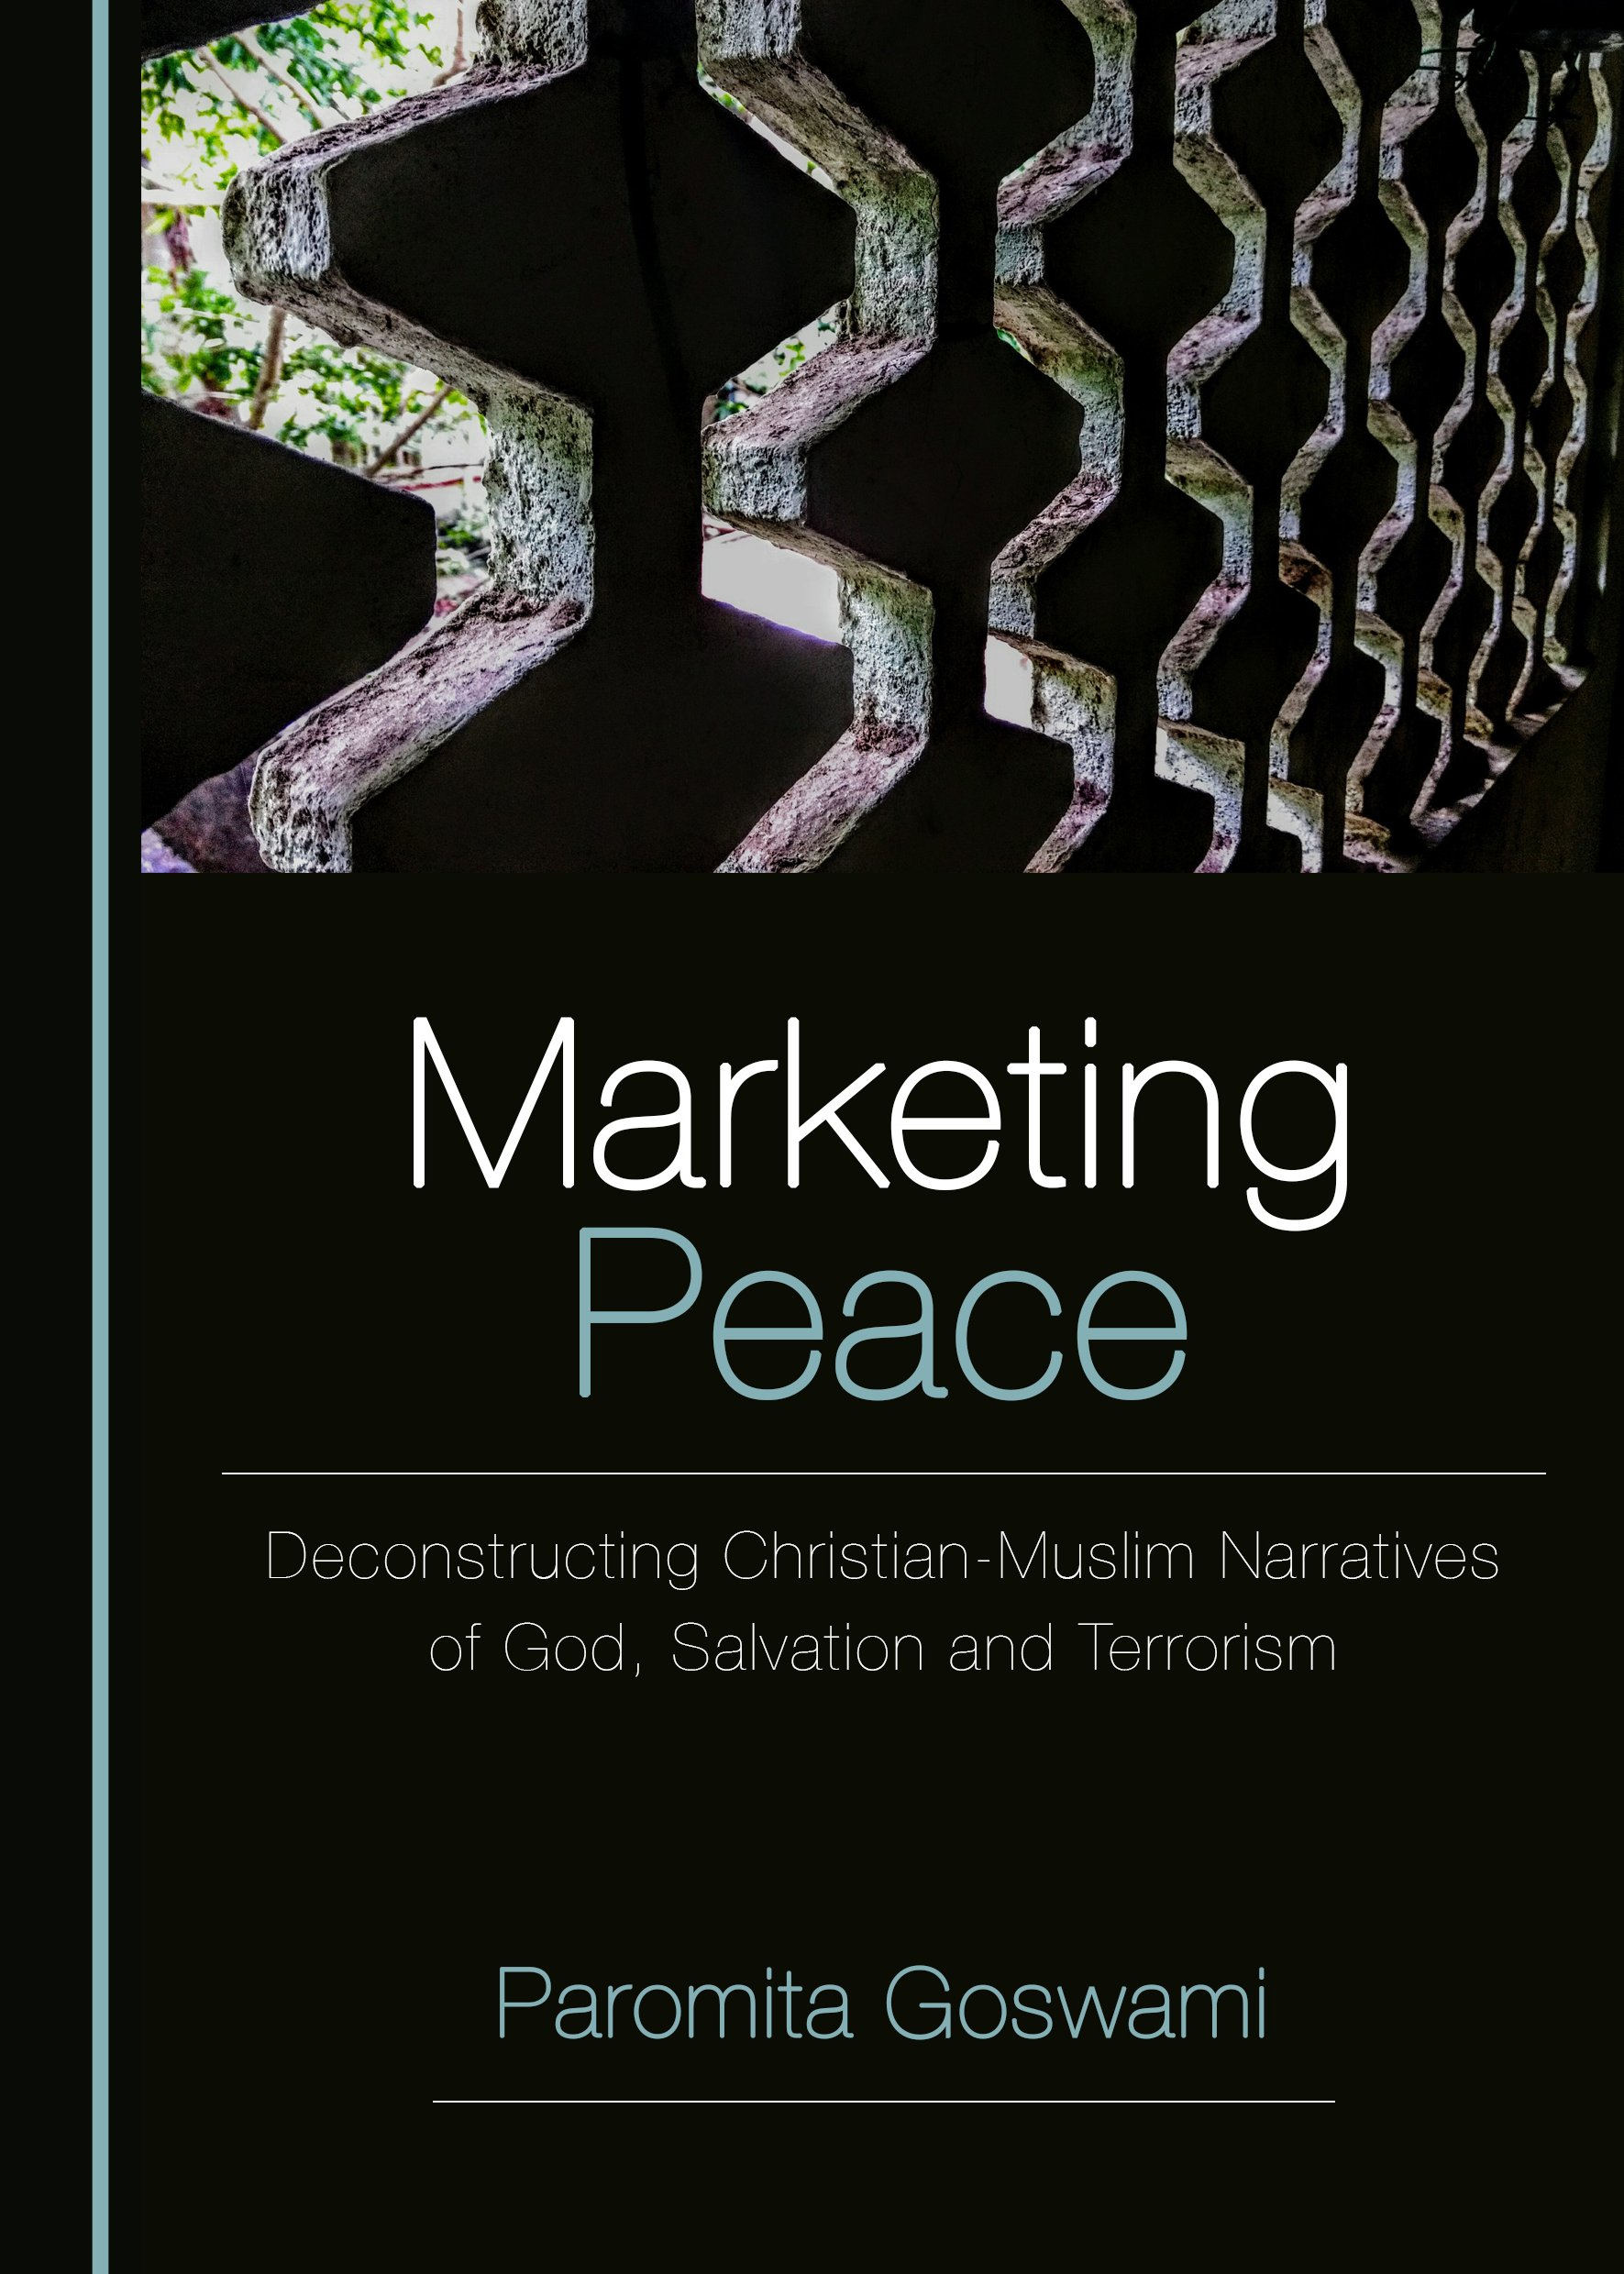 Marketing Peace: Deconstructing Christian-Muslim Narratives of God, Salvation and Terrorism